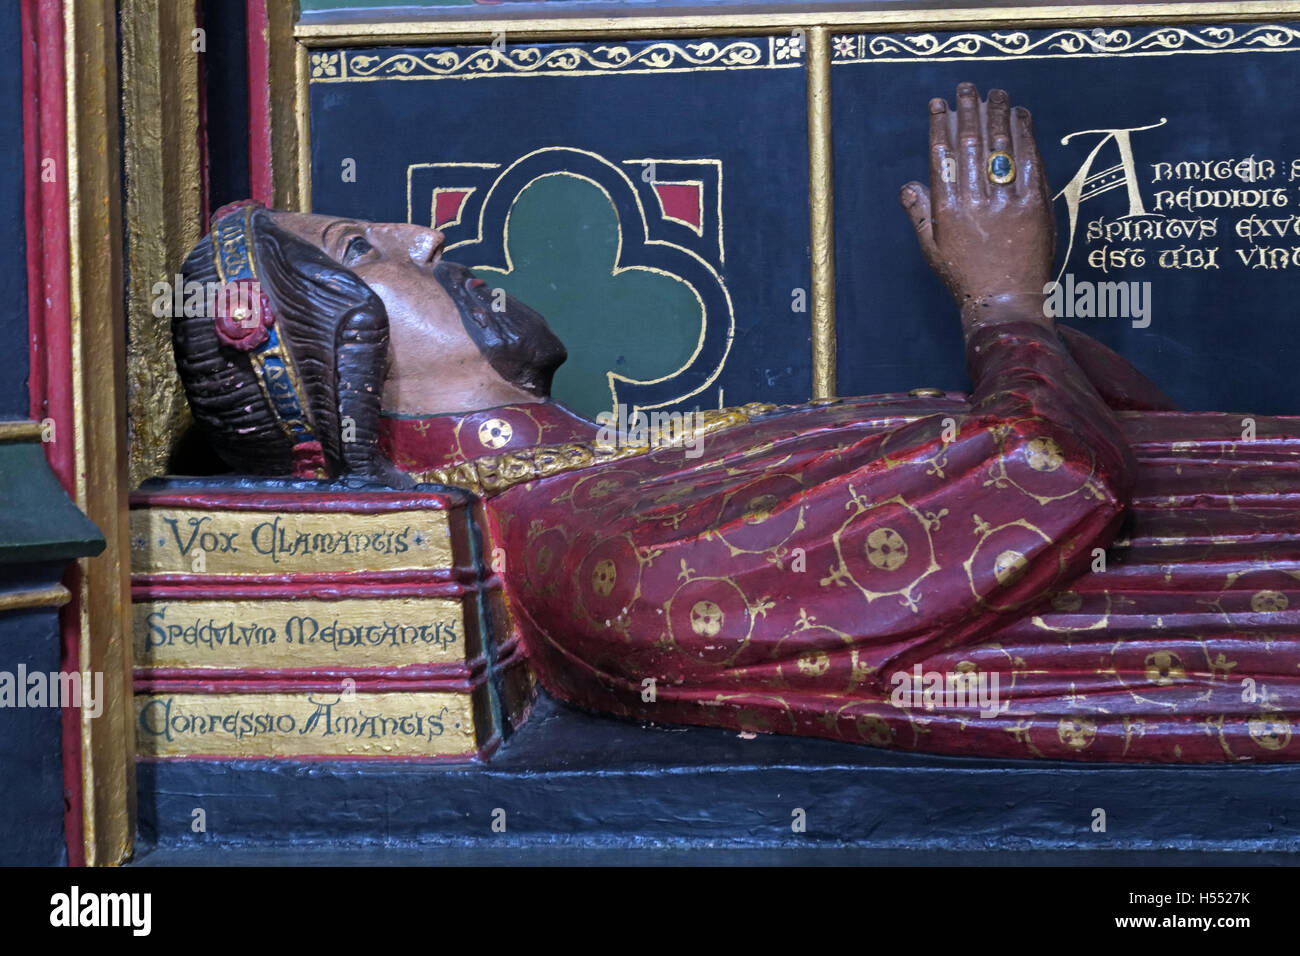 England,UK,religion,religious,crhistian,memorial,in,memoriam,decorative,poet,Chaucer,history,historic,tourist,site,tourism,Church,John Gower,John Gower Tomb,Southwark cathedral,Mirour de lOmme,Vox Clamantis,Confessio Amantis,Cathedral Church,GoTonySmith,@HotpixUK,Tony,Smith,UK,GB,Great,Britain,United,Kingdom,English,British,England,Buy Pictures of,Buy Images Of,Images of,Stock Images,Tony Smith,United Kingdom,Great Britain,British Isles